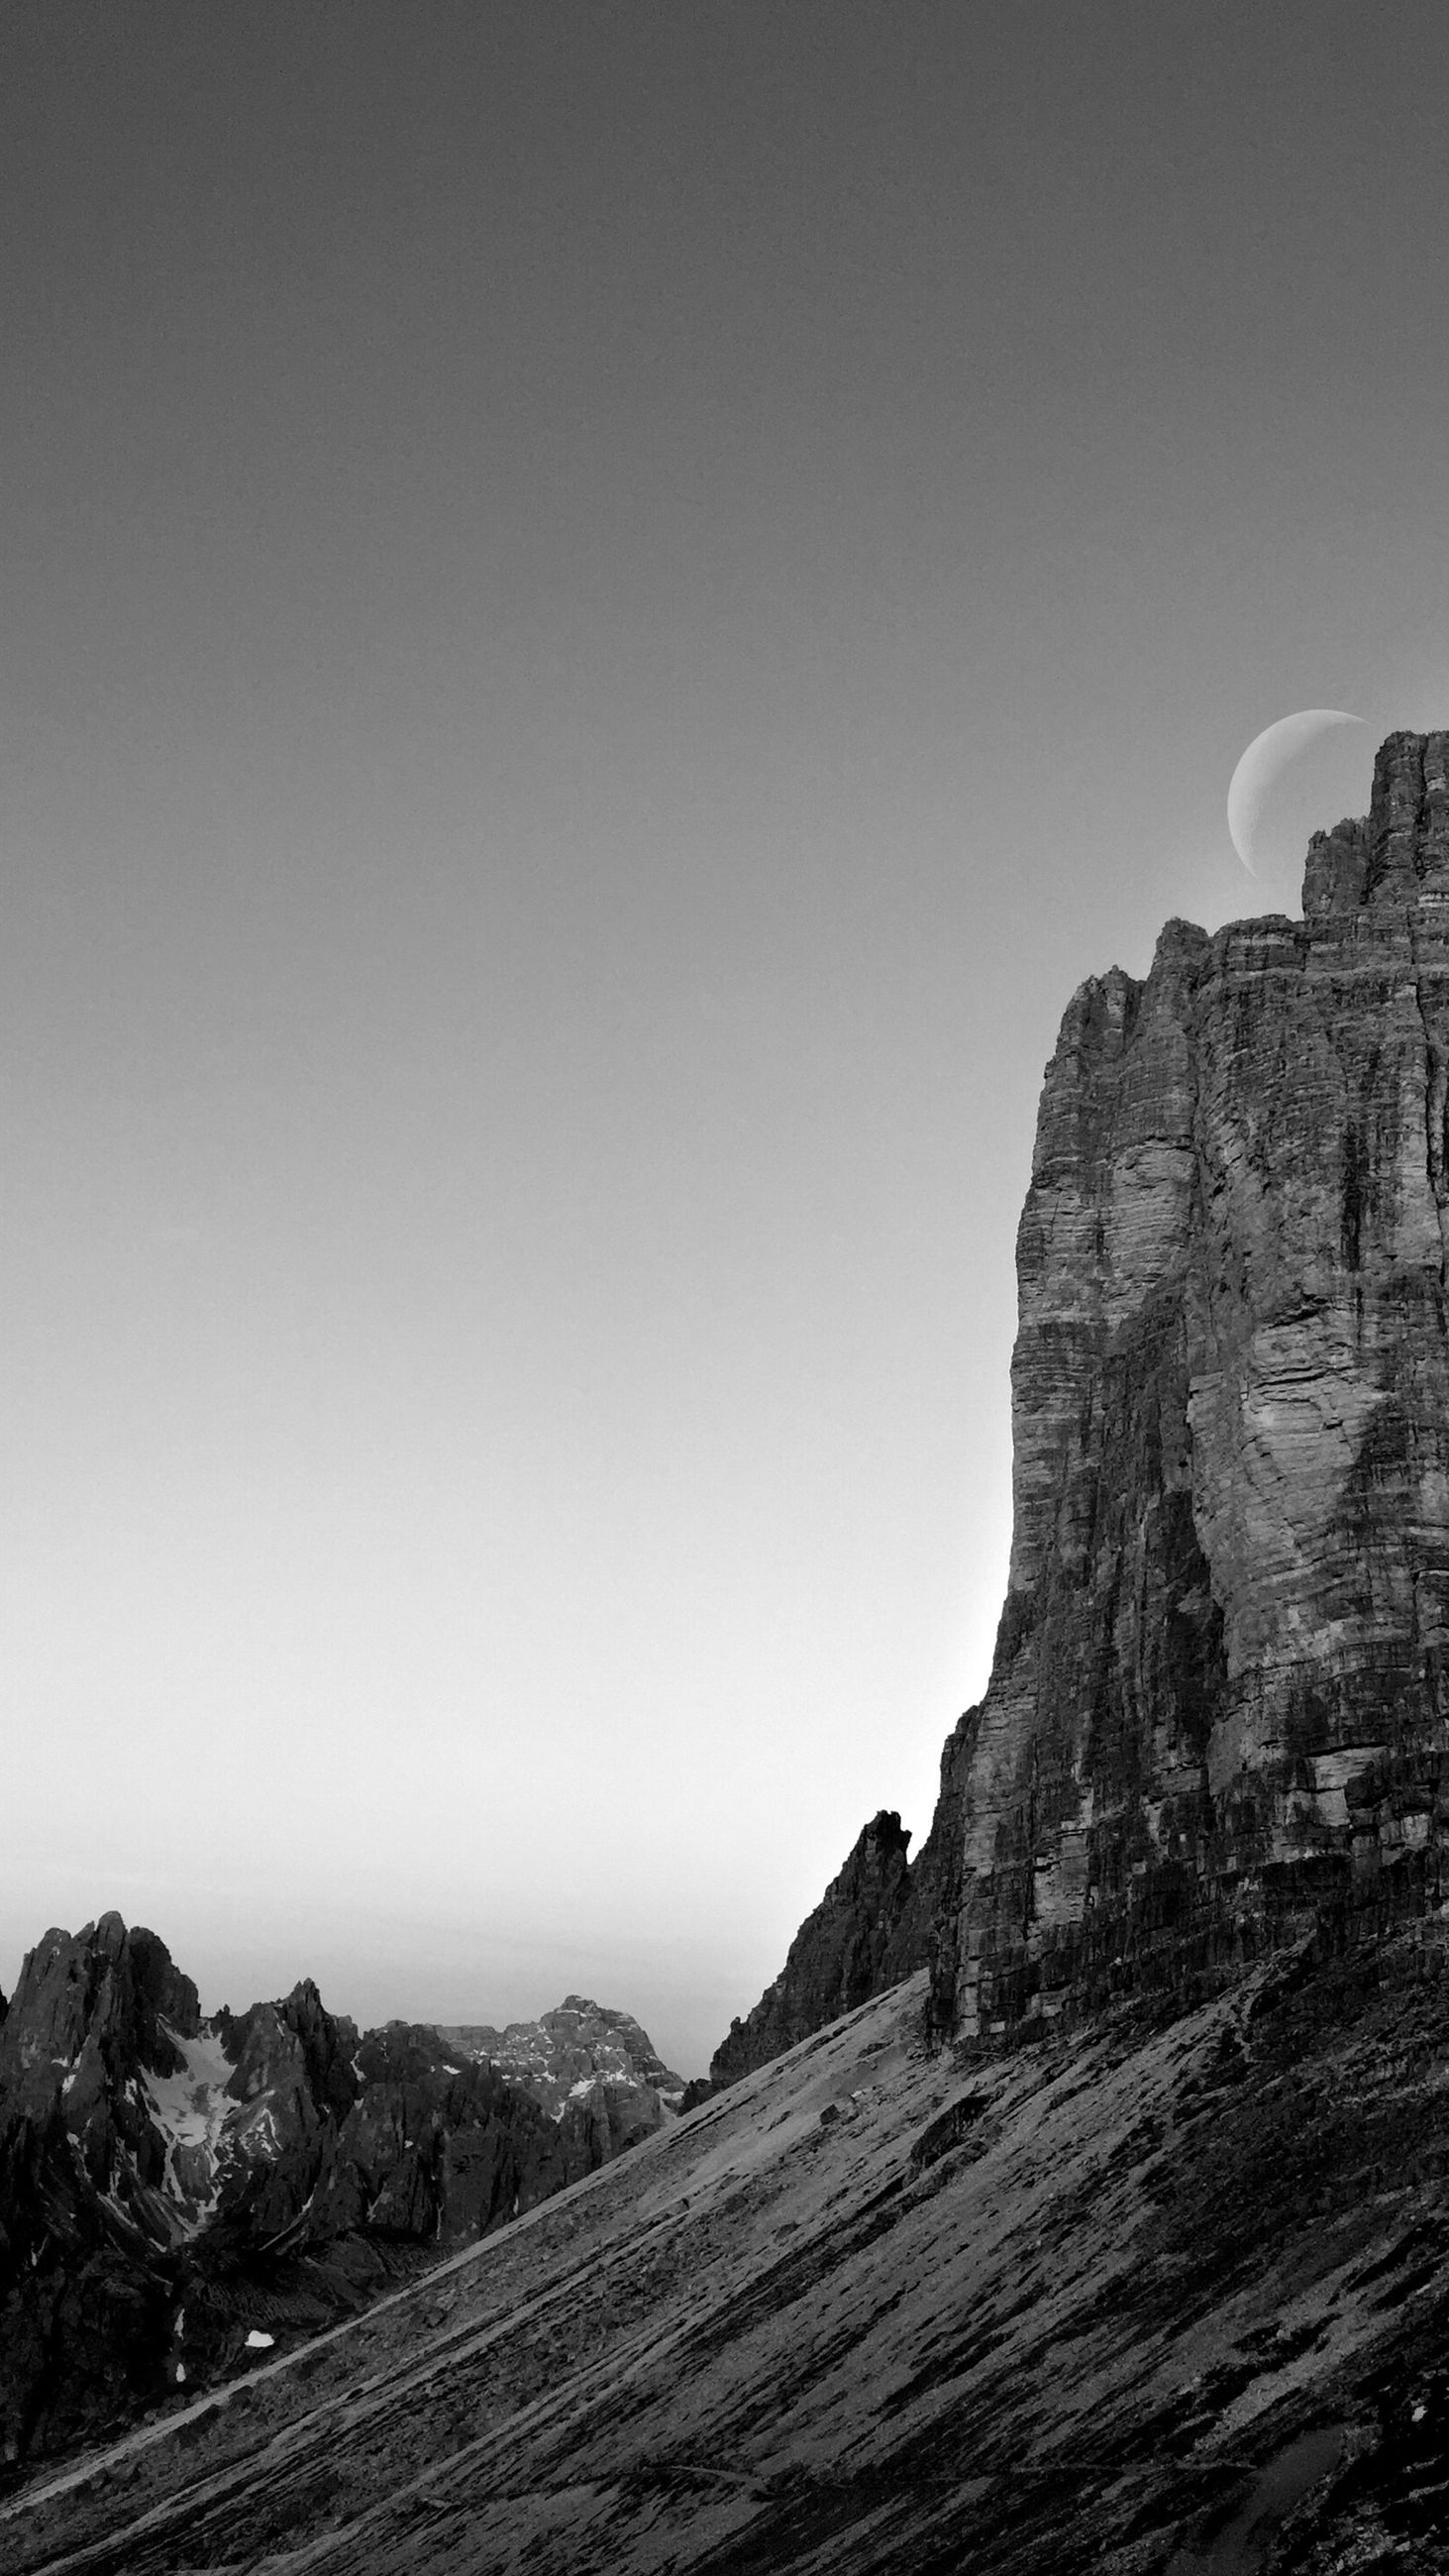 sky, rock, copy space, rock formation, clear sky, rock - object, mountain, solid, beauty in nature, nature, scenics - nature, day, tranquility, no people, tranquil scene, environment, cliff, geology, landscape, land, outdoors, formation, eroded, mountain peak